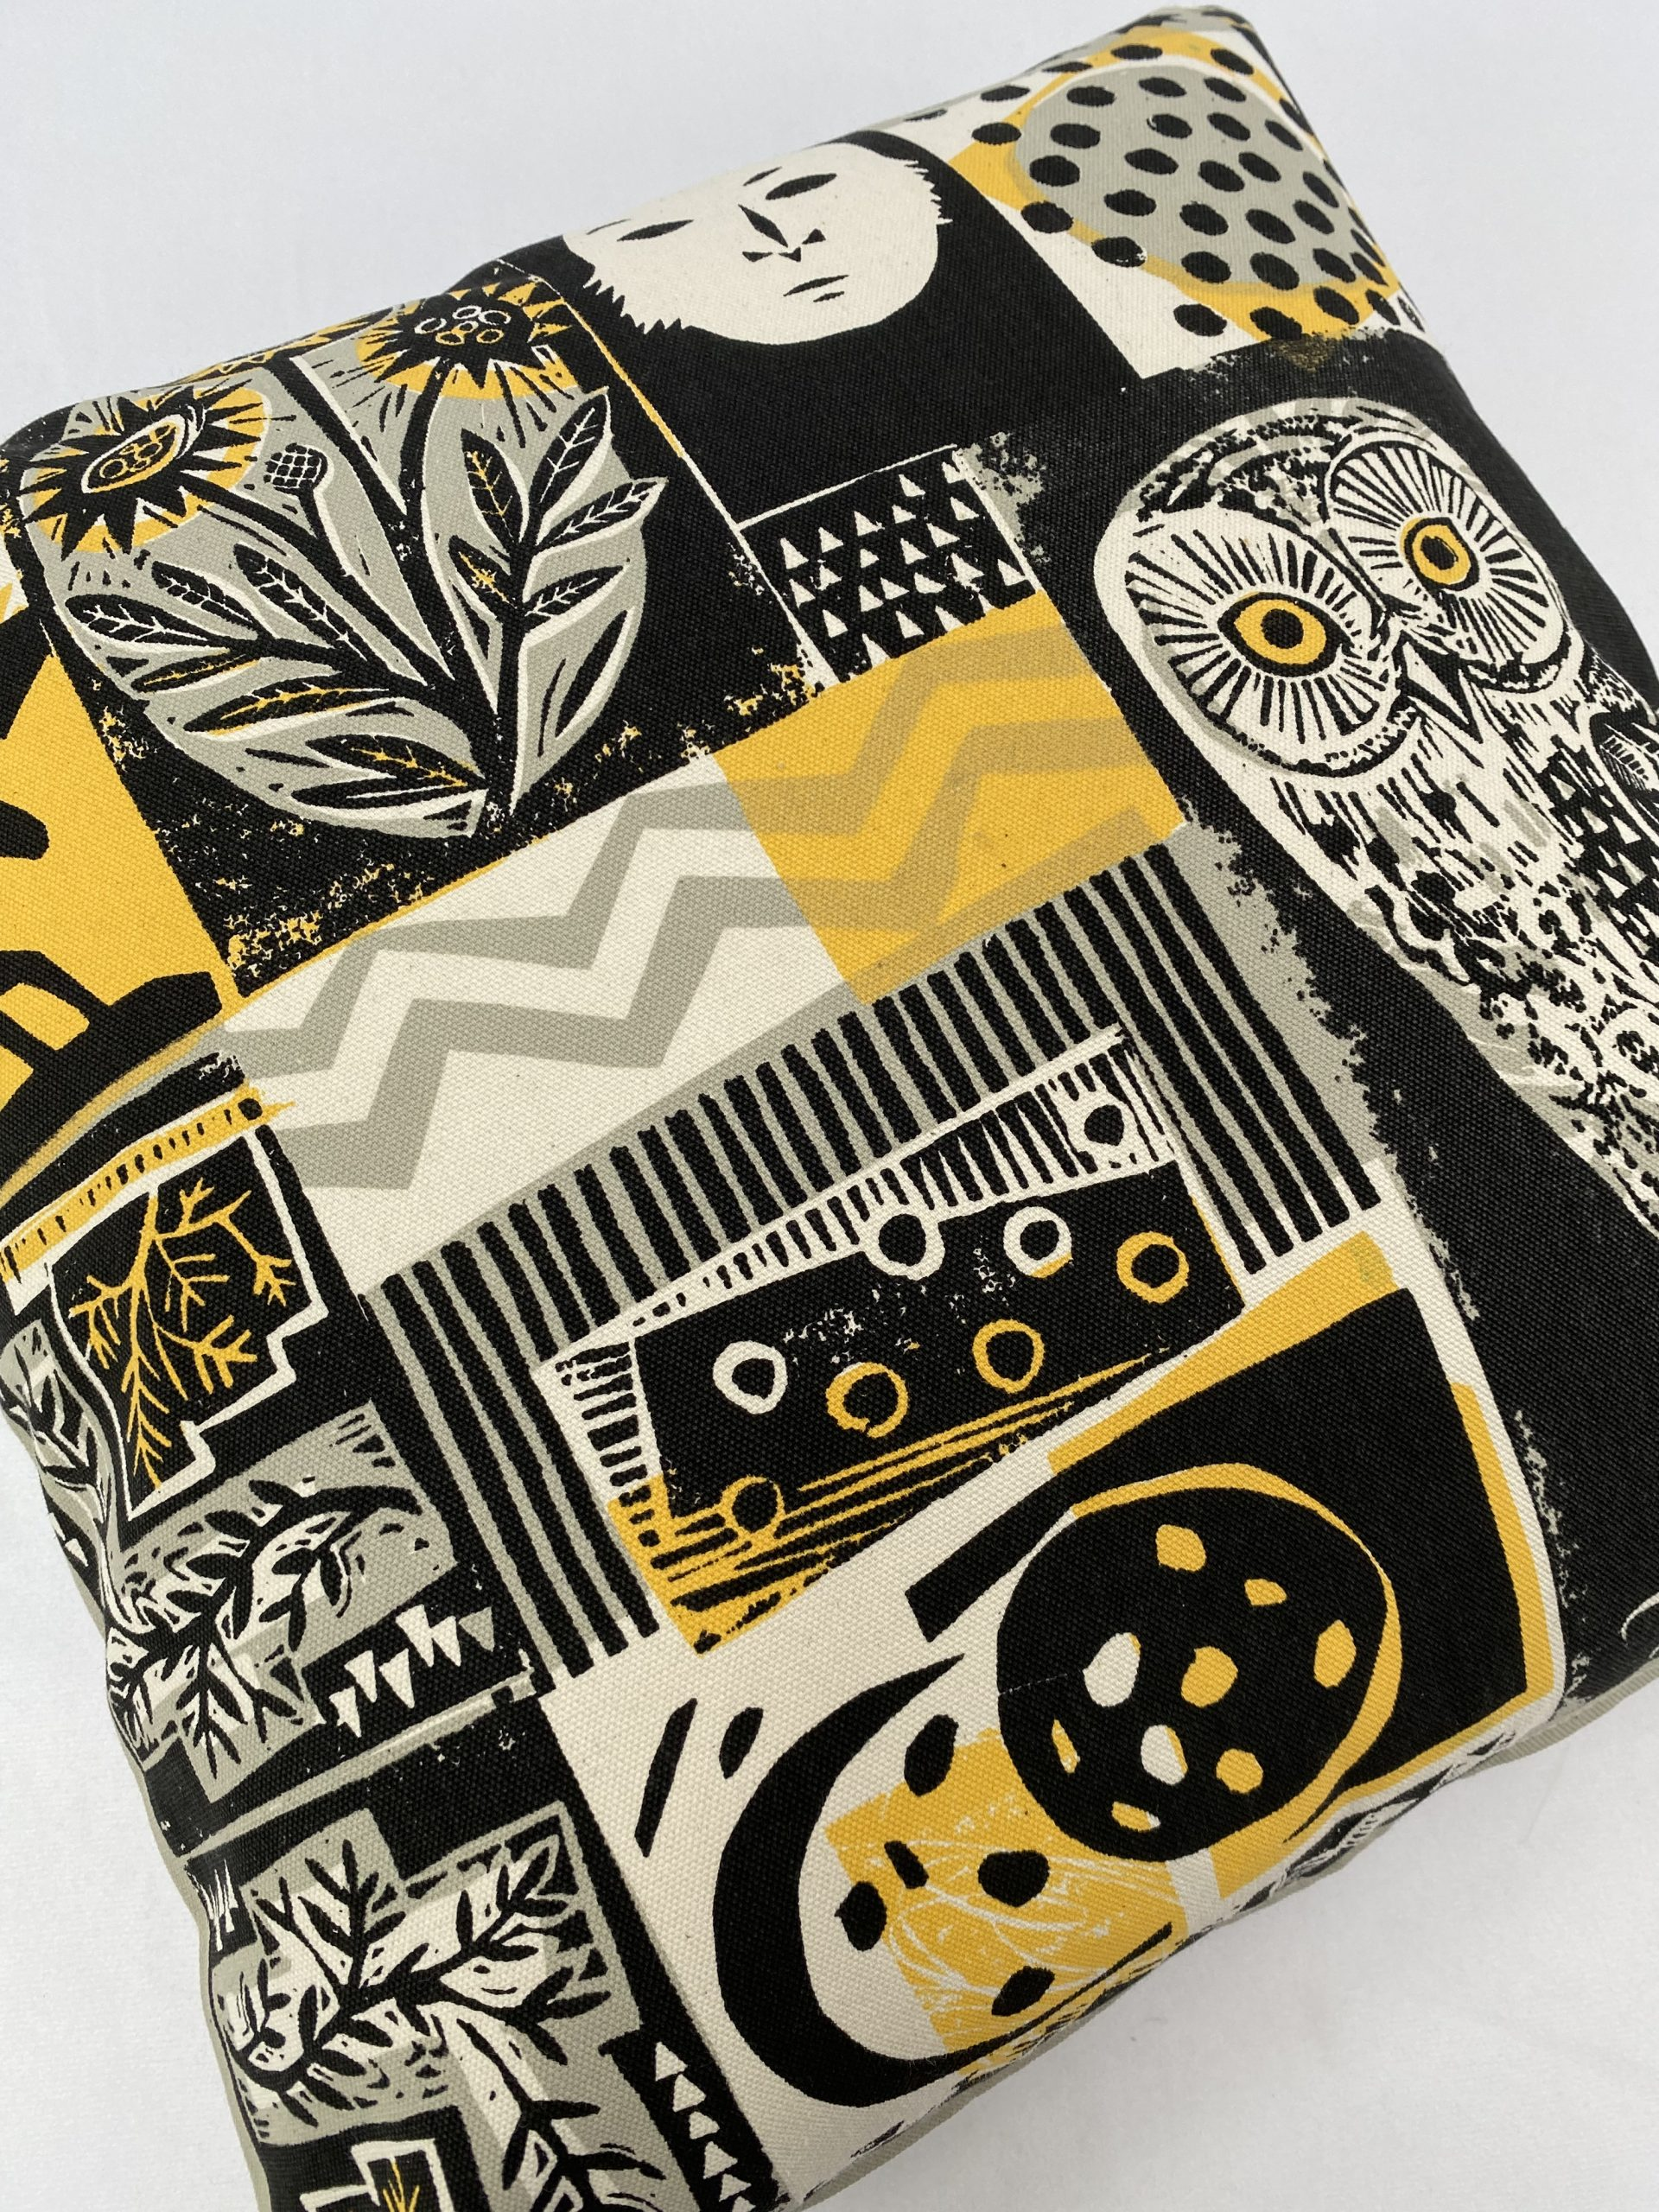 Screen printed textile merchandise including cushion covers by Pul Bristow designed by Mark Herald for Tate